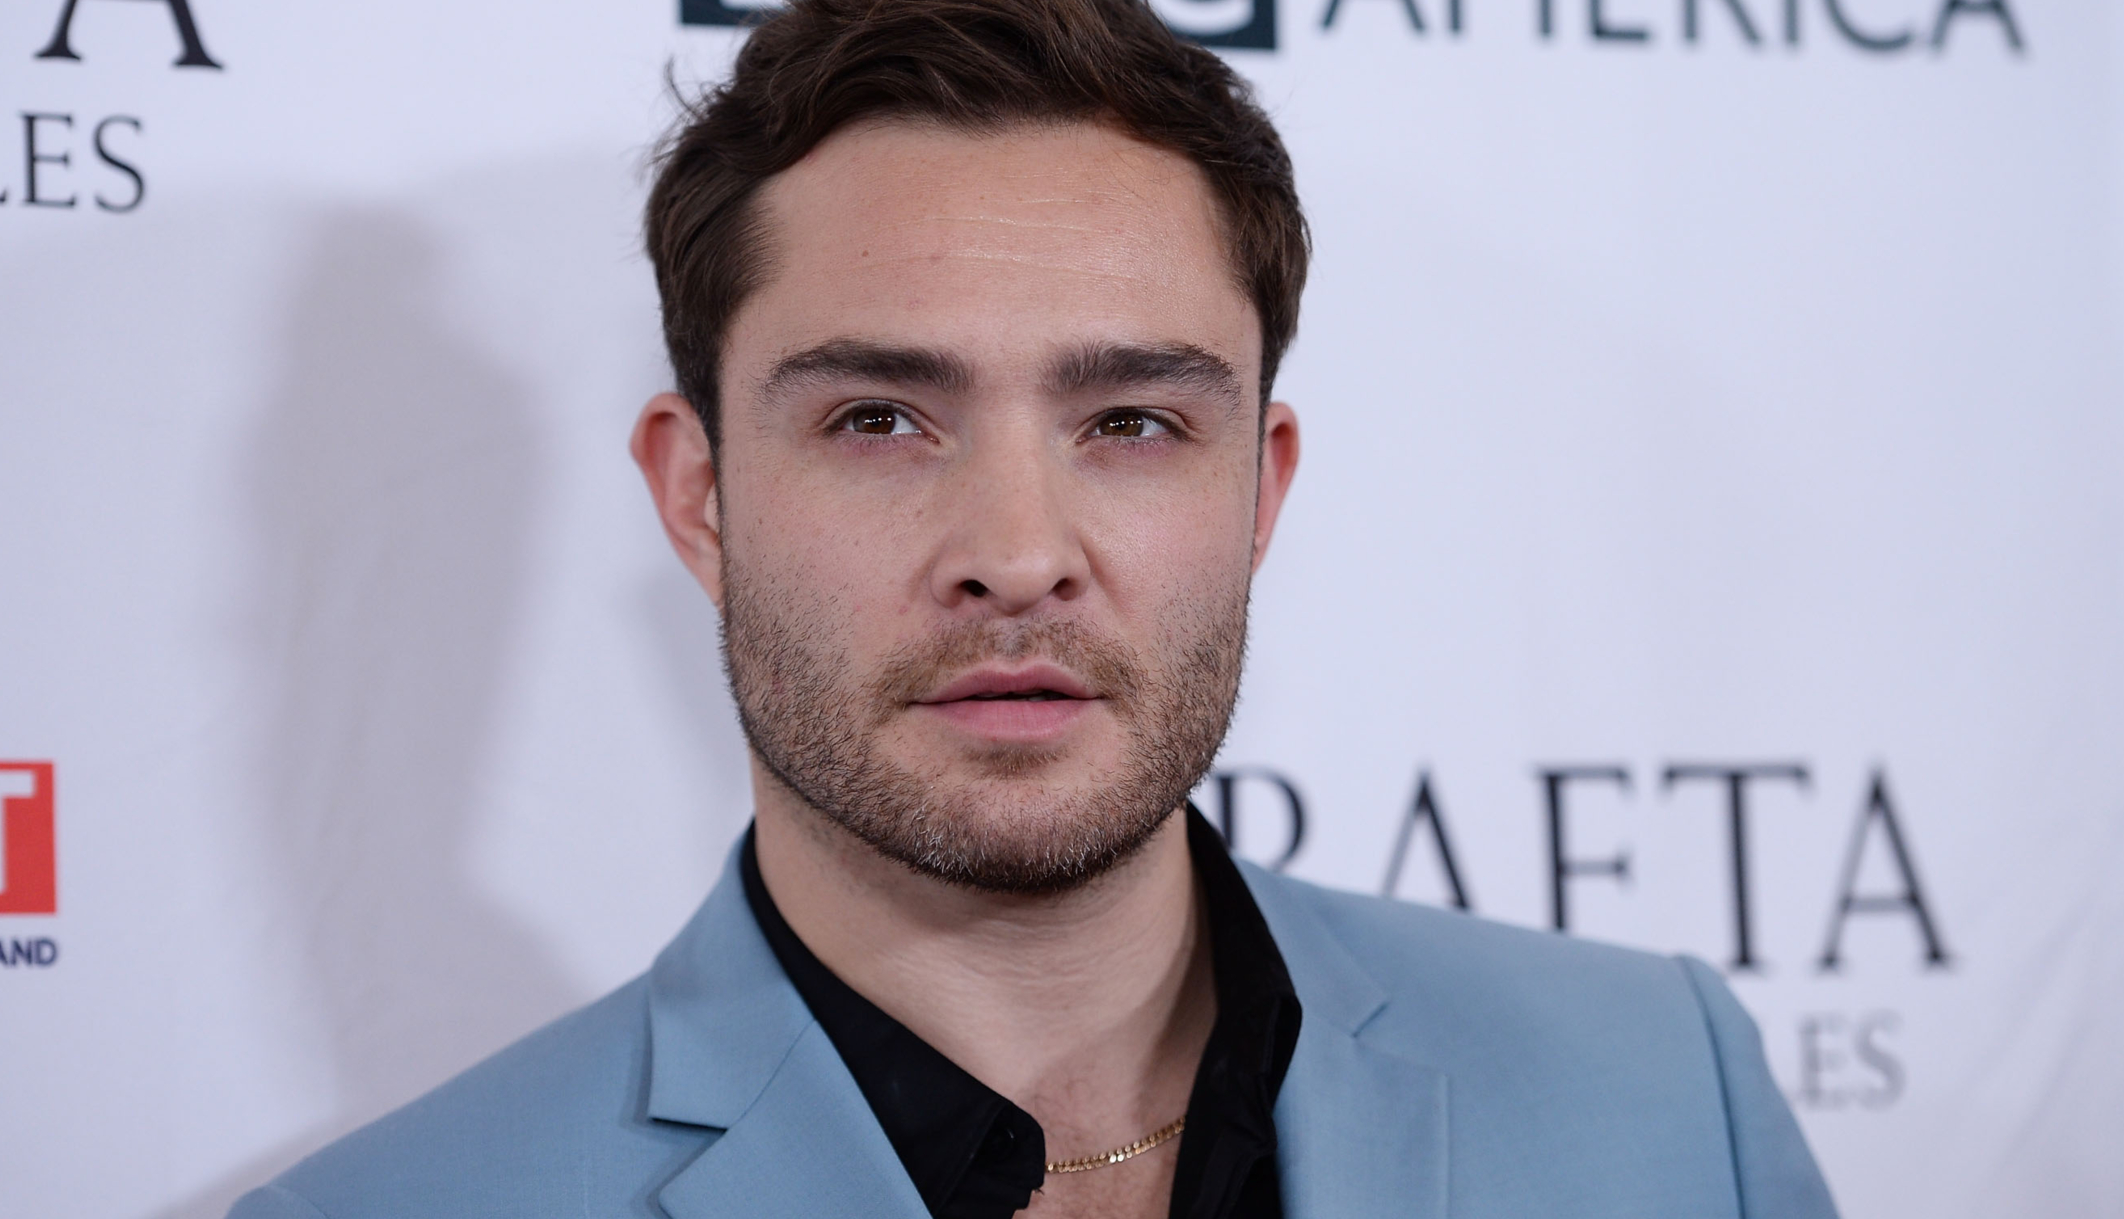 'Gossip Girl' Star Ed Westwick Cleared Of Sexual Assault Charges Due To 'Insufficient Evidence'